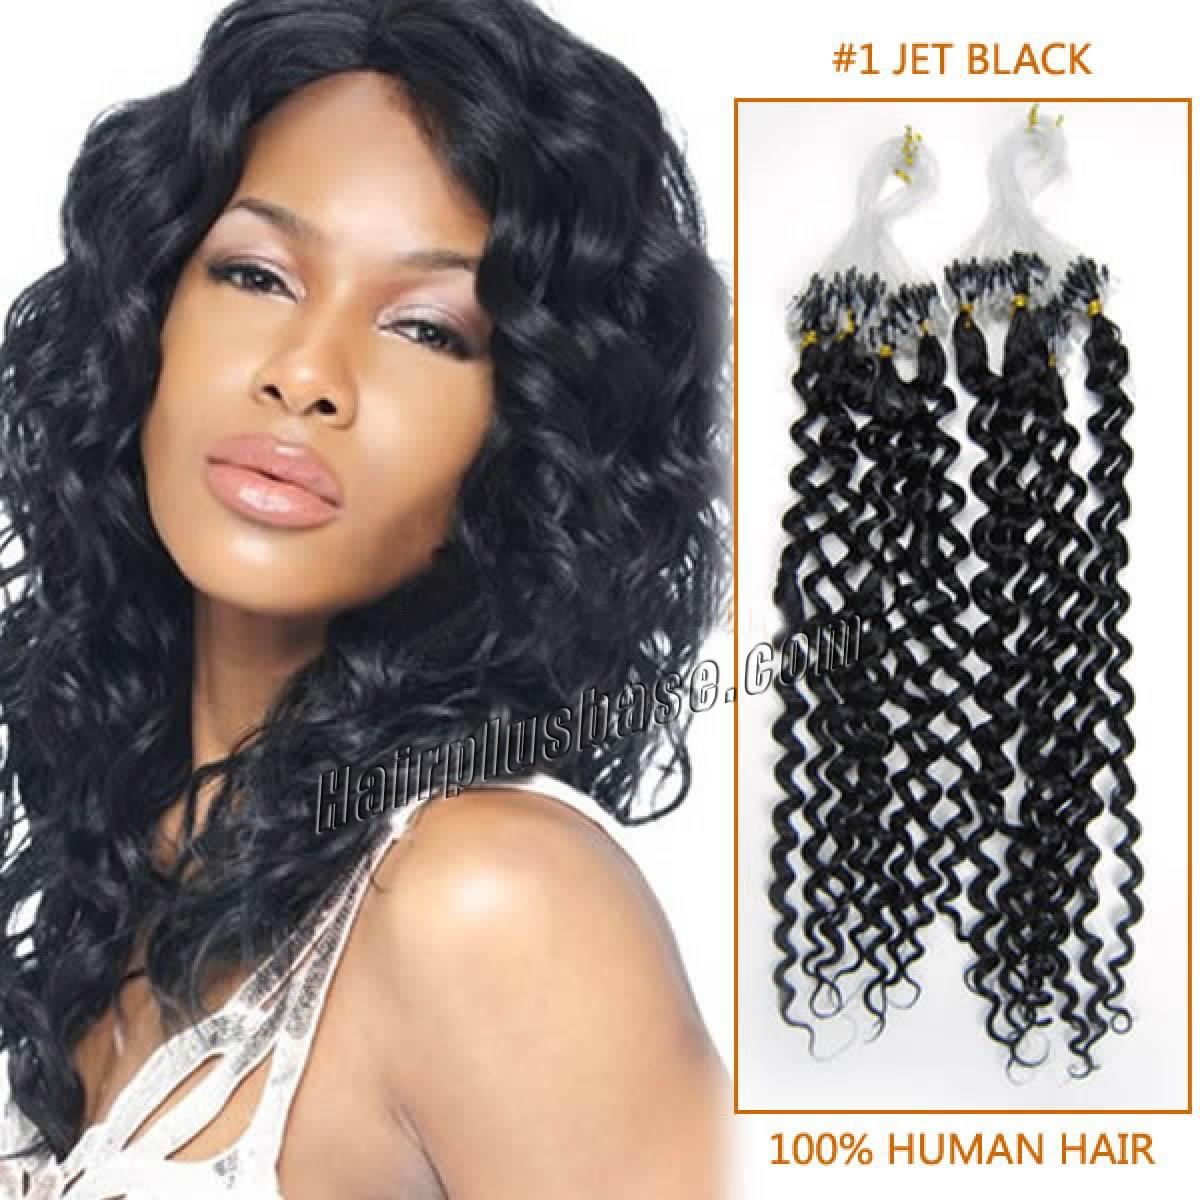 Black Curly Human Hair Extensions